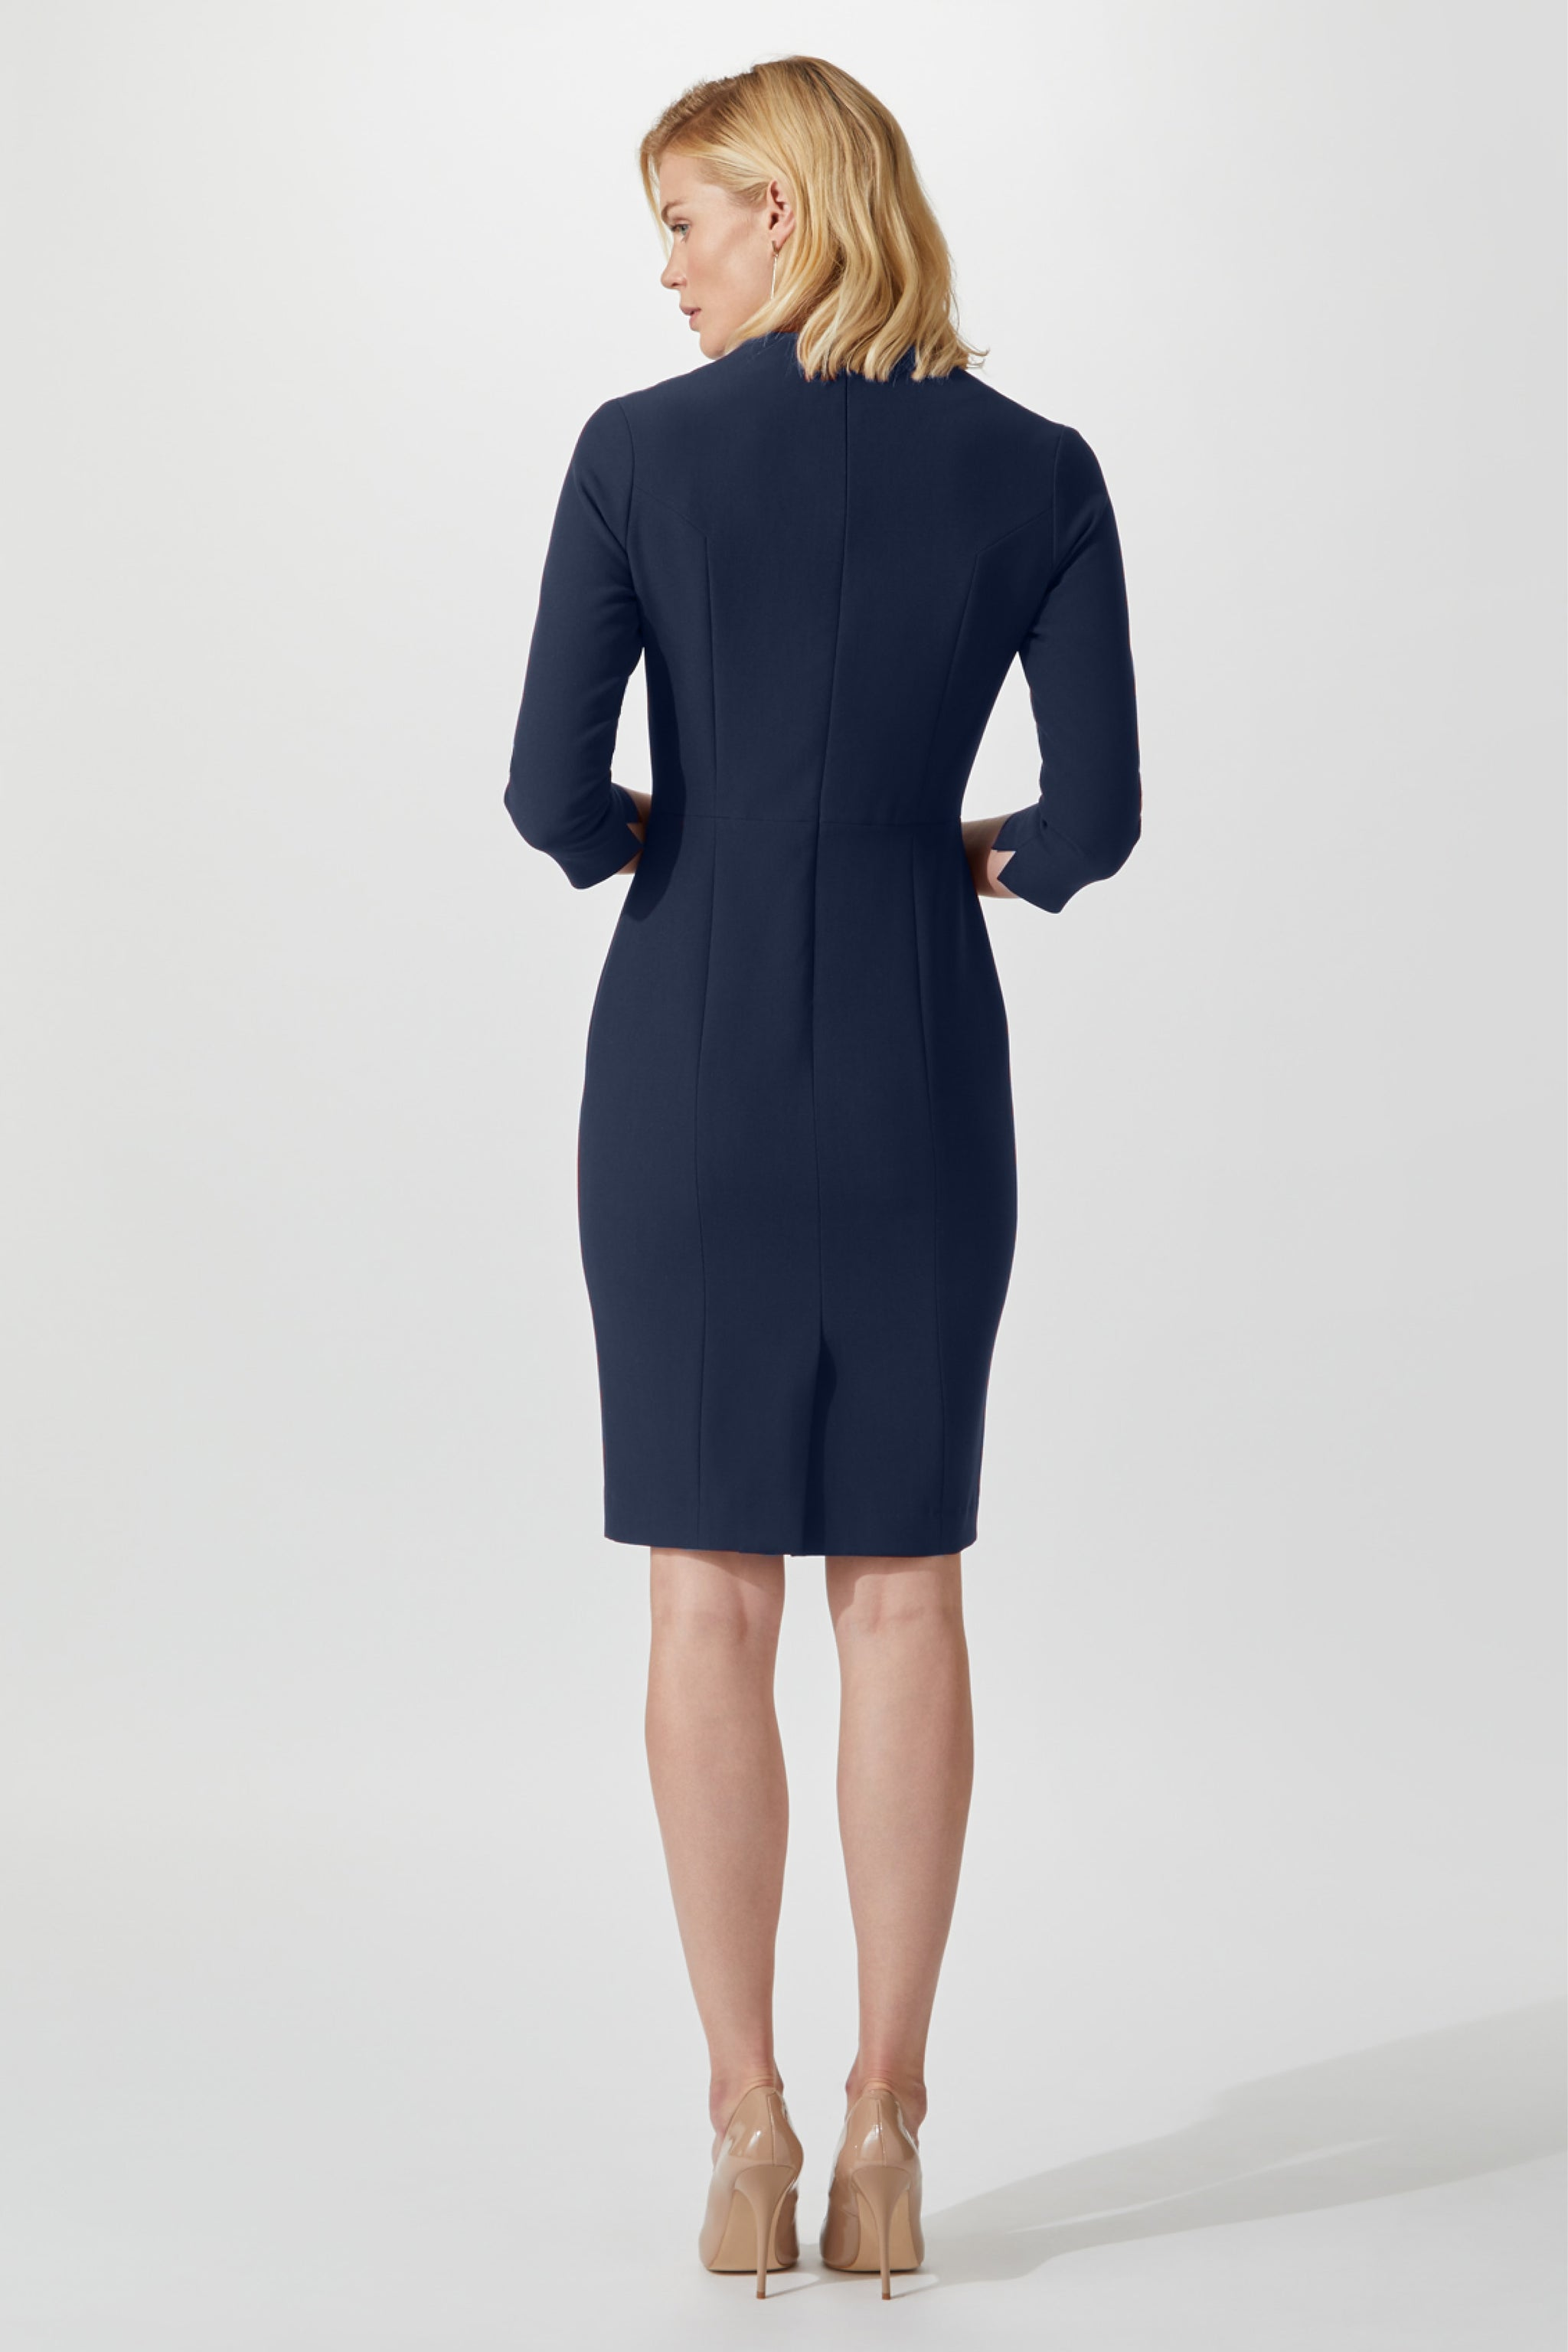 Belmont Navy Dress